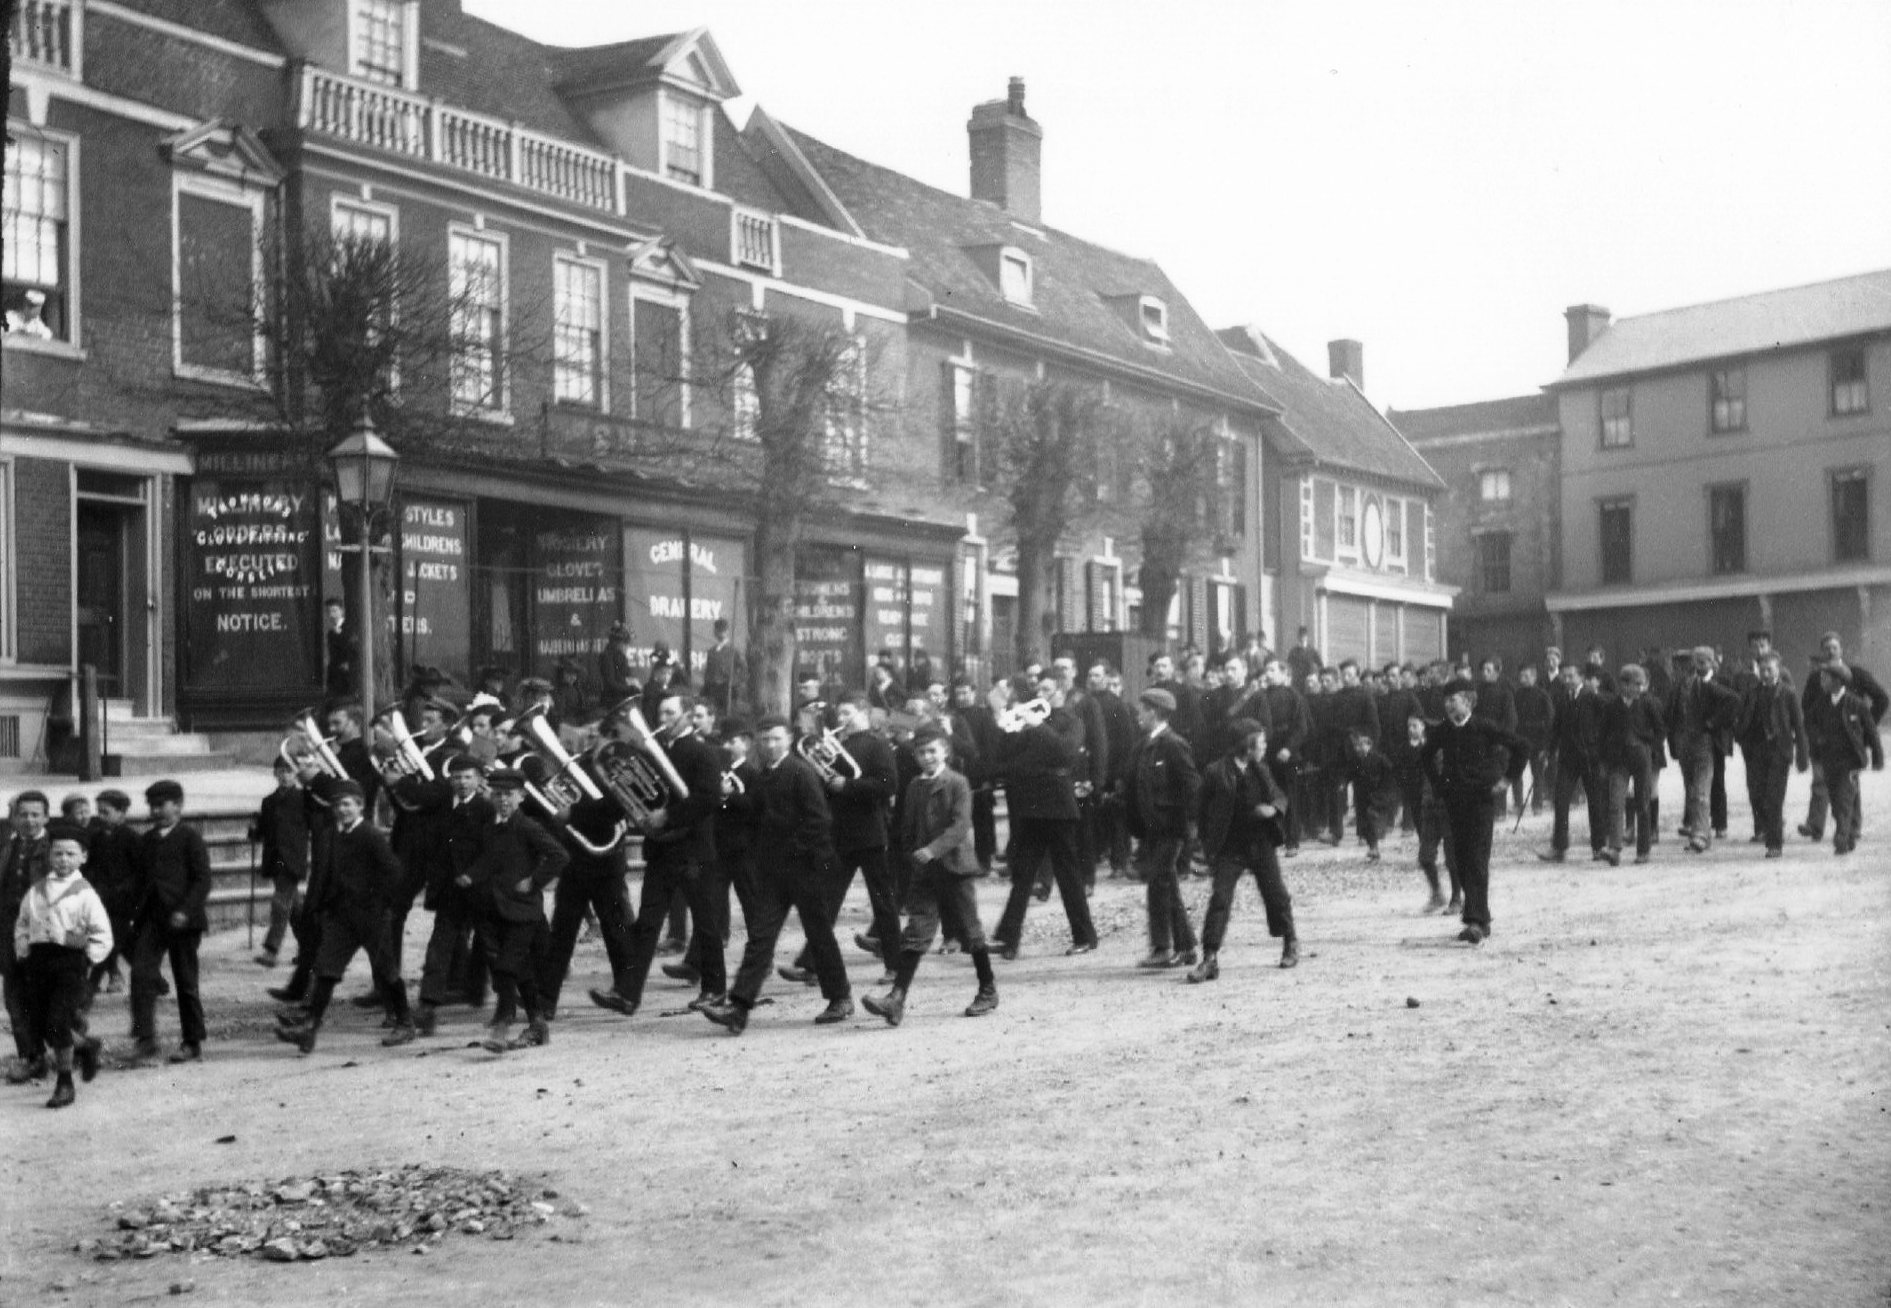 Band marching down Market Hill